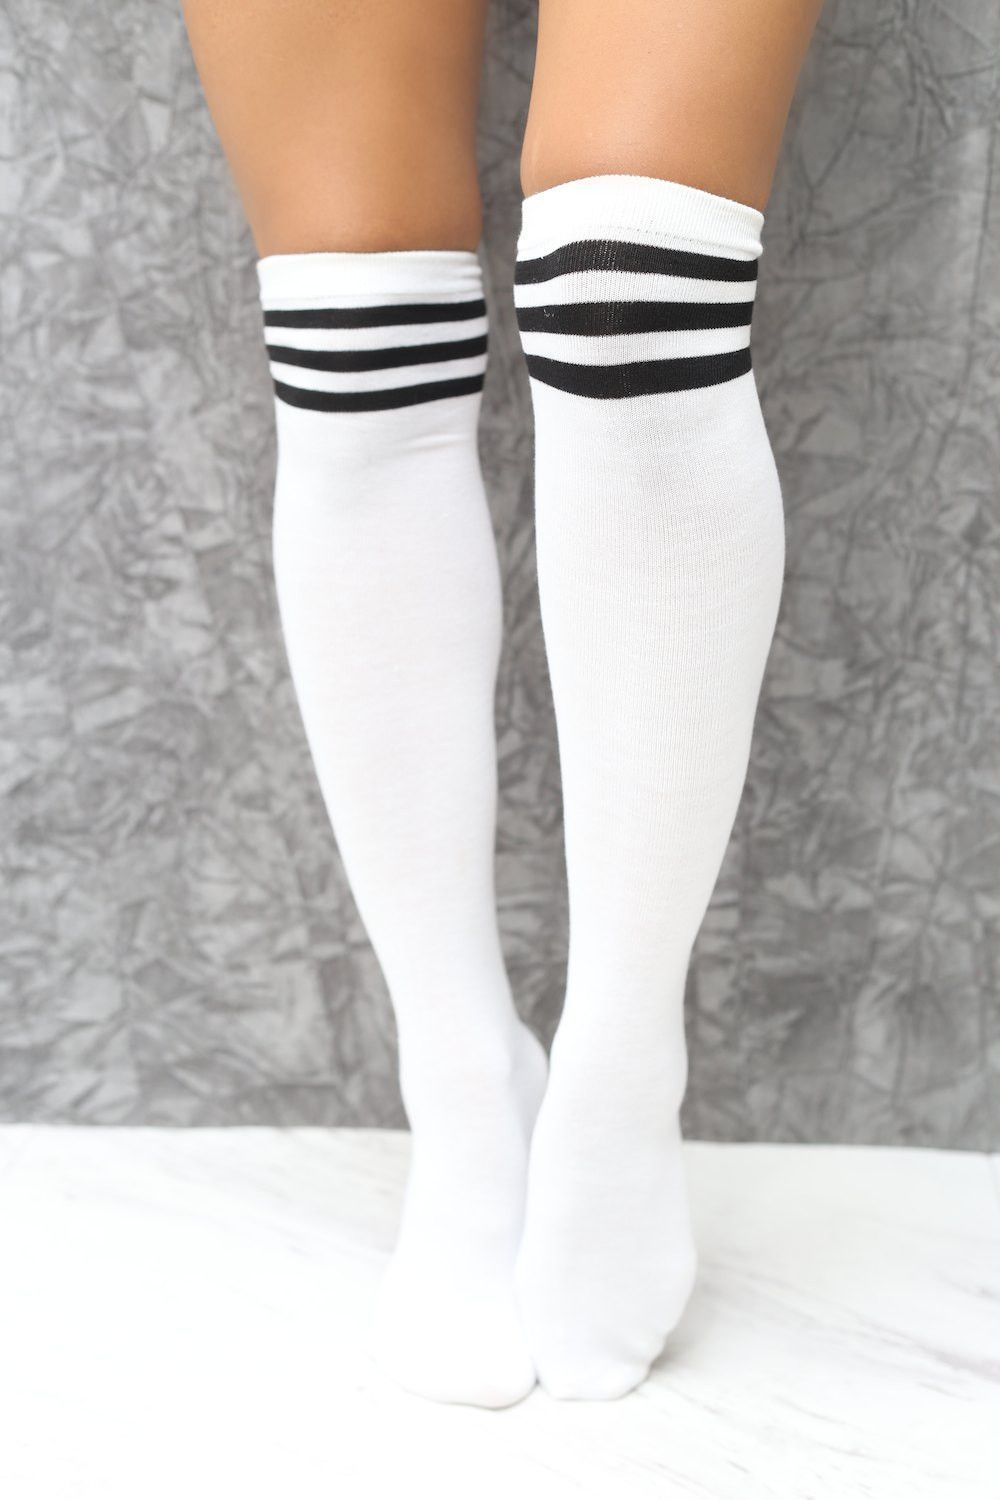 2fde8d7ce31 High   Tight thigh-high sports socks